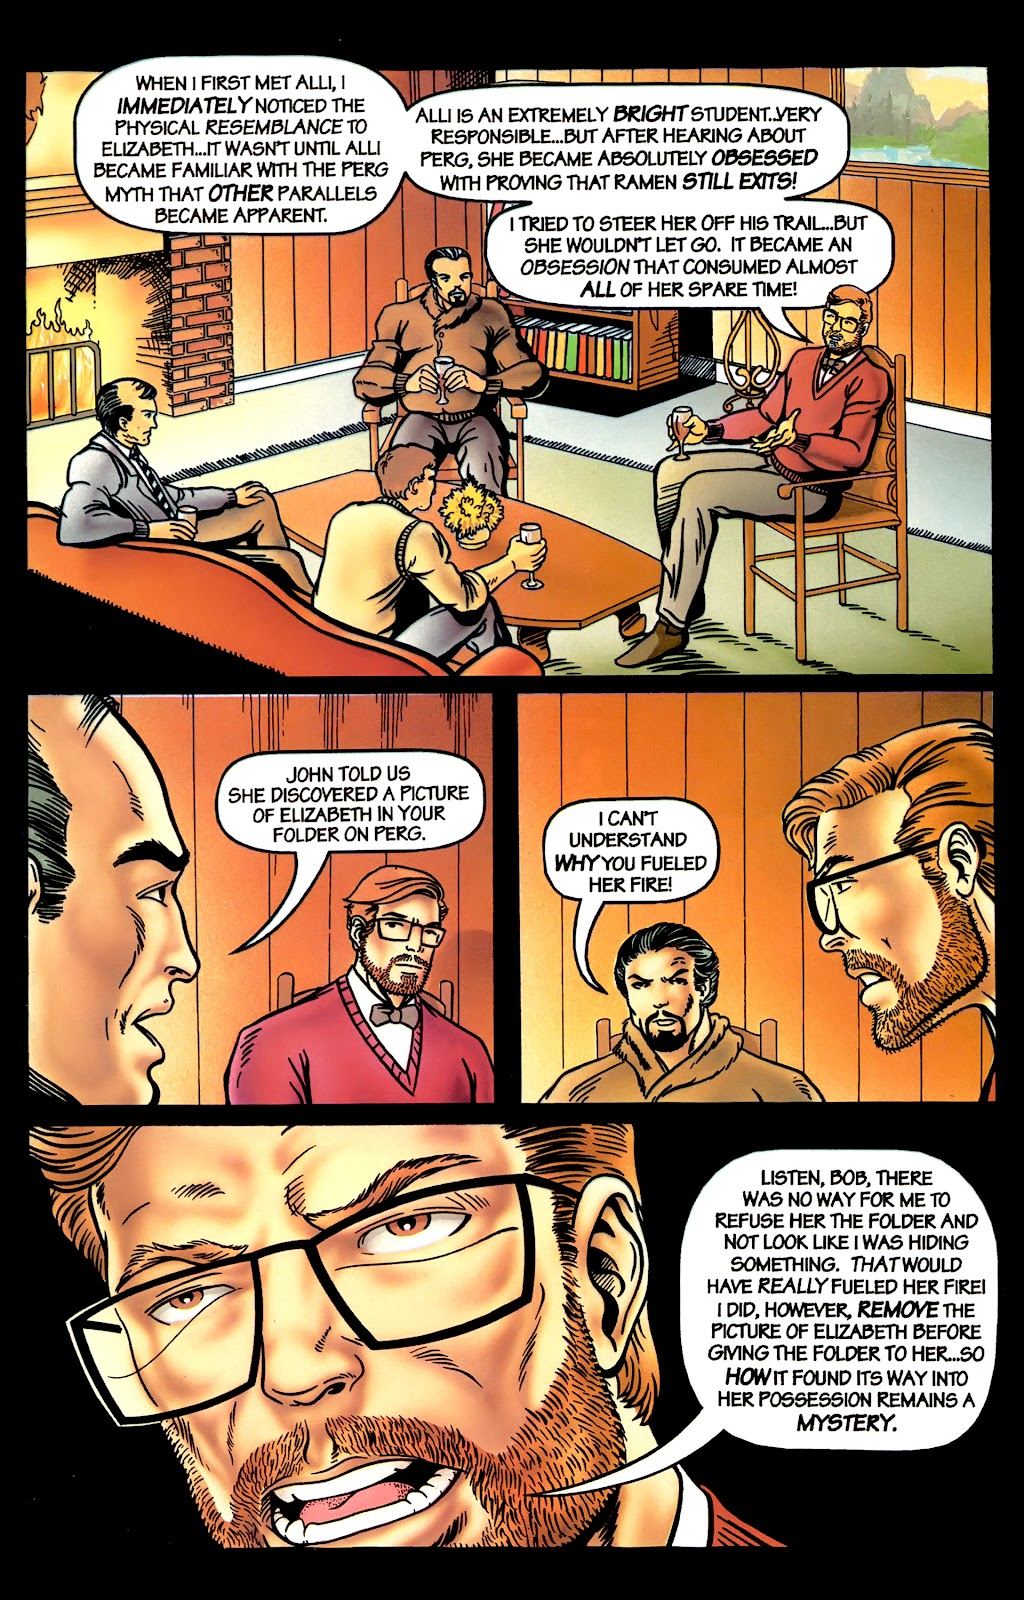 Read online Perg comic -  Issue #4 - 19